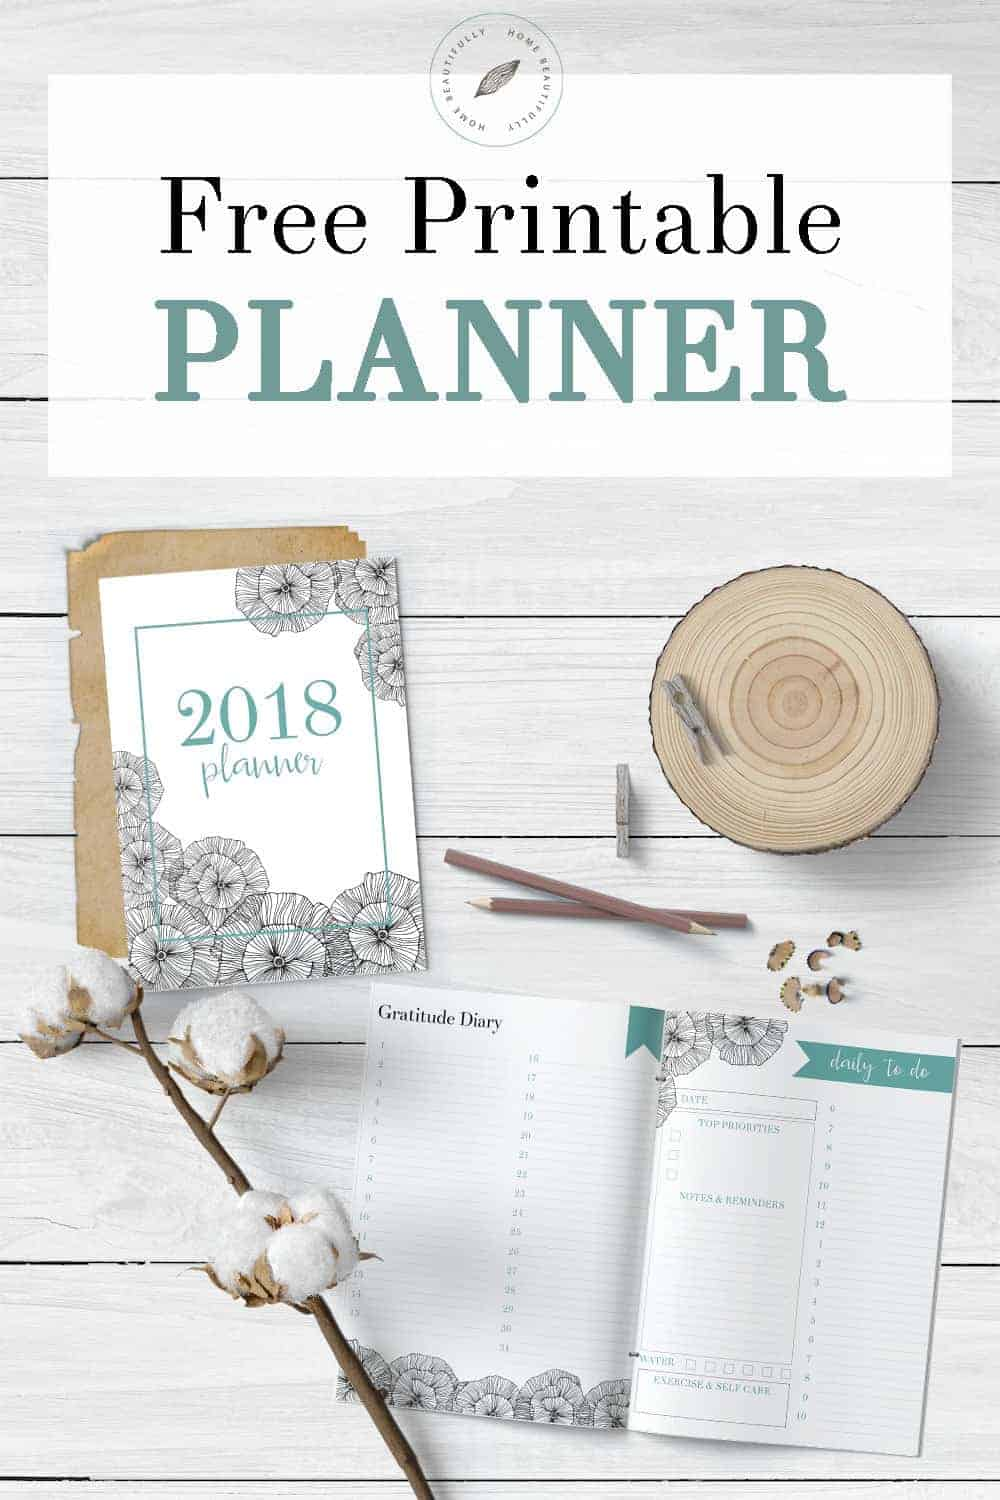 Free planner printable on a white wood background with cotton, a wood slice, and pencils